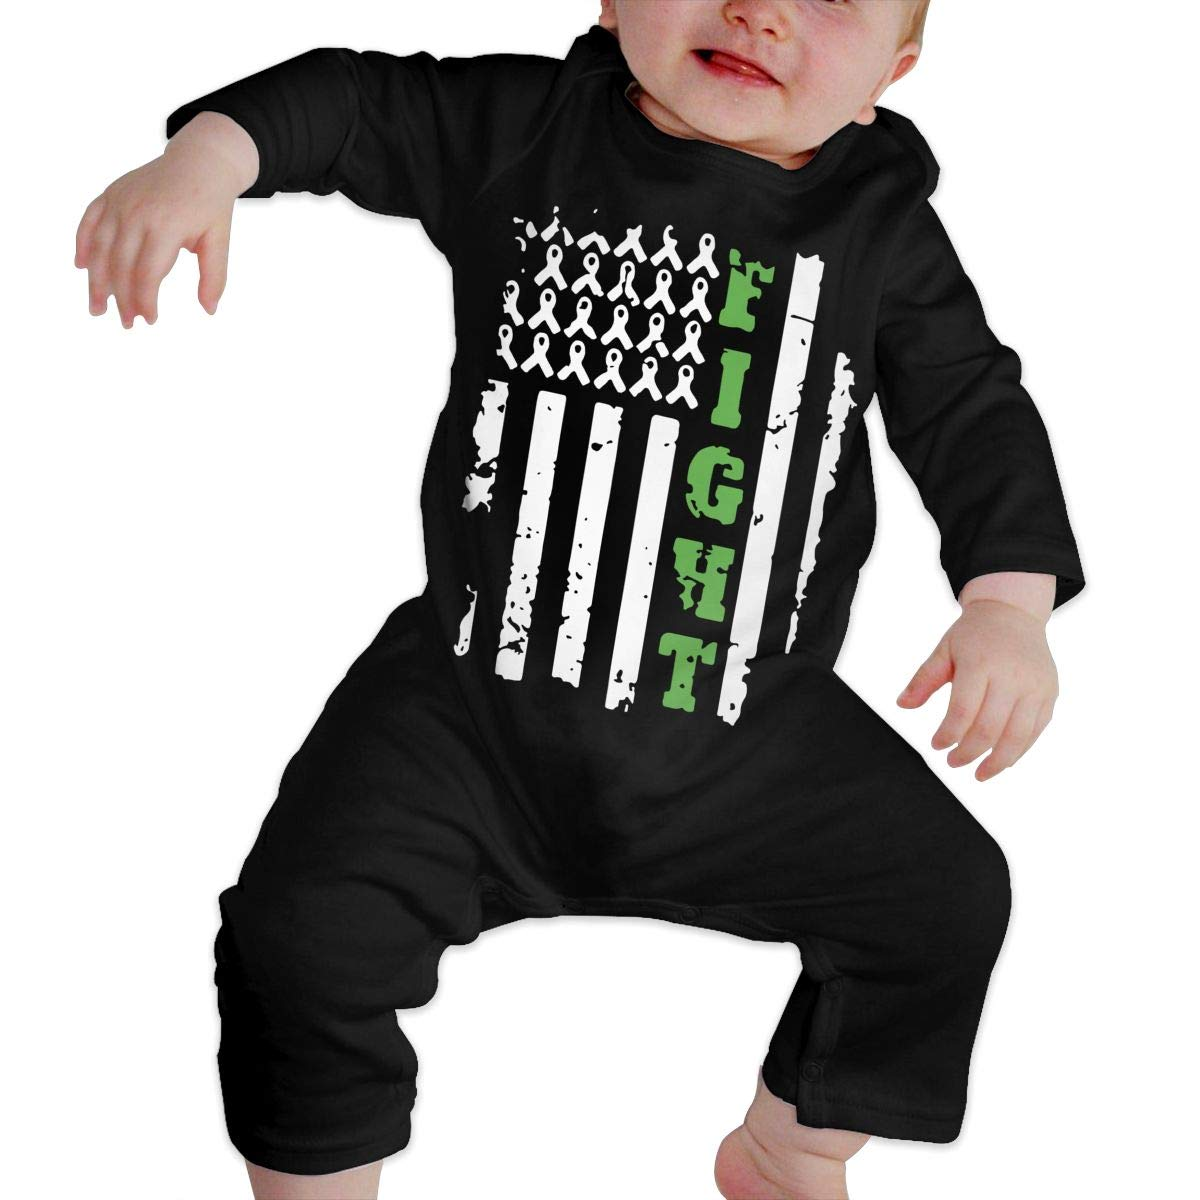 A1BY-5US Newborn Baby Boys Girls Cotton Long Sleeve Bile Duct Cancer Awareness1 Jumpsuit Romper Funny Printed Romper Clothes